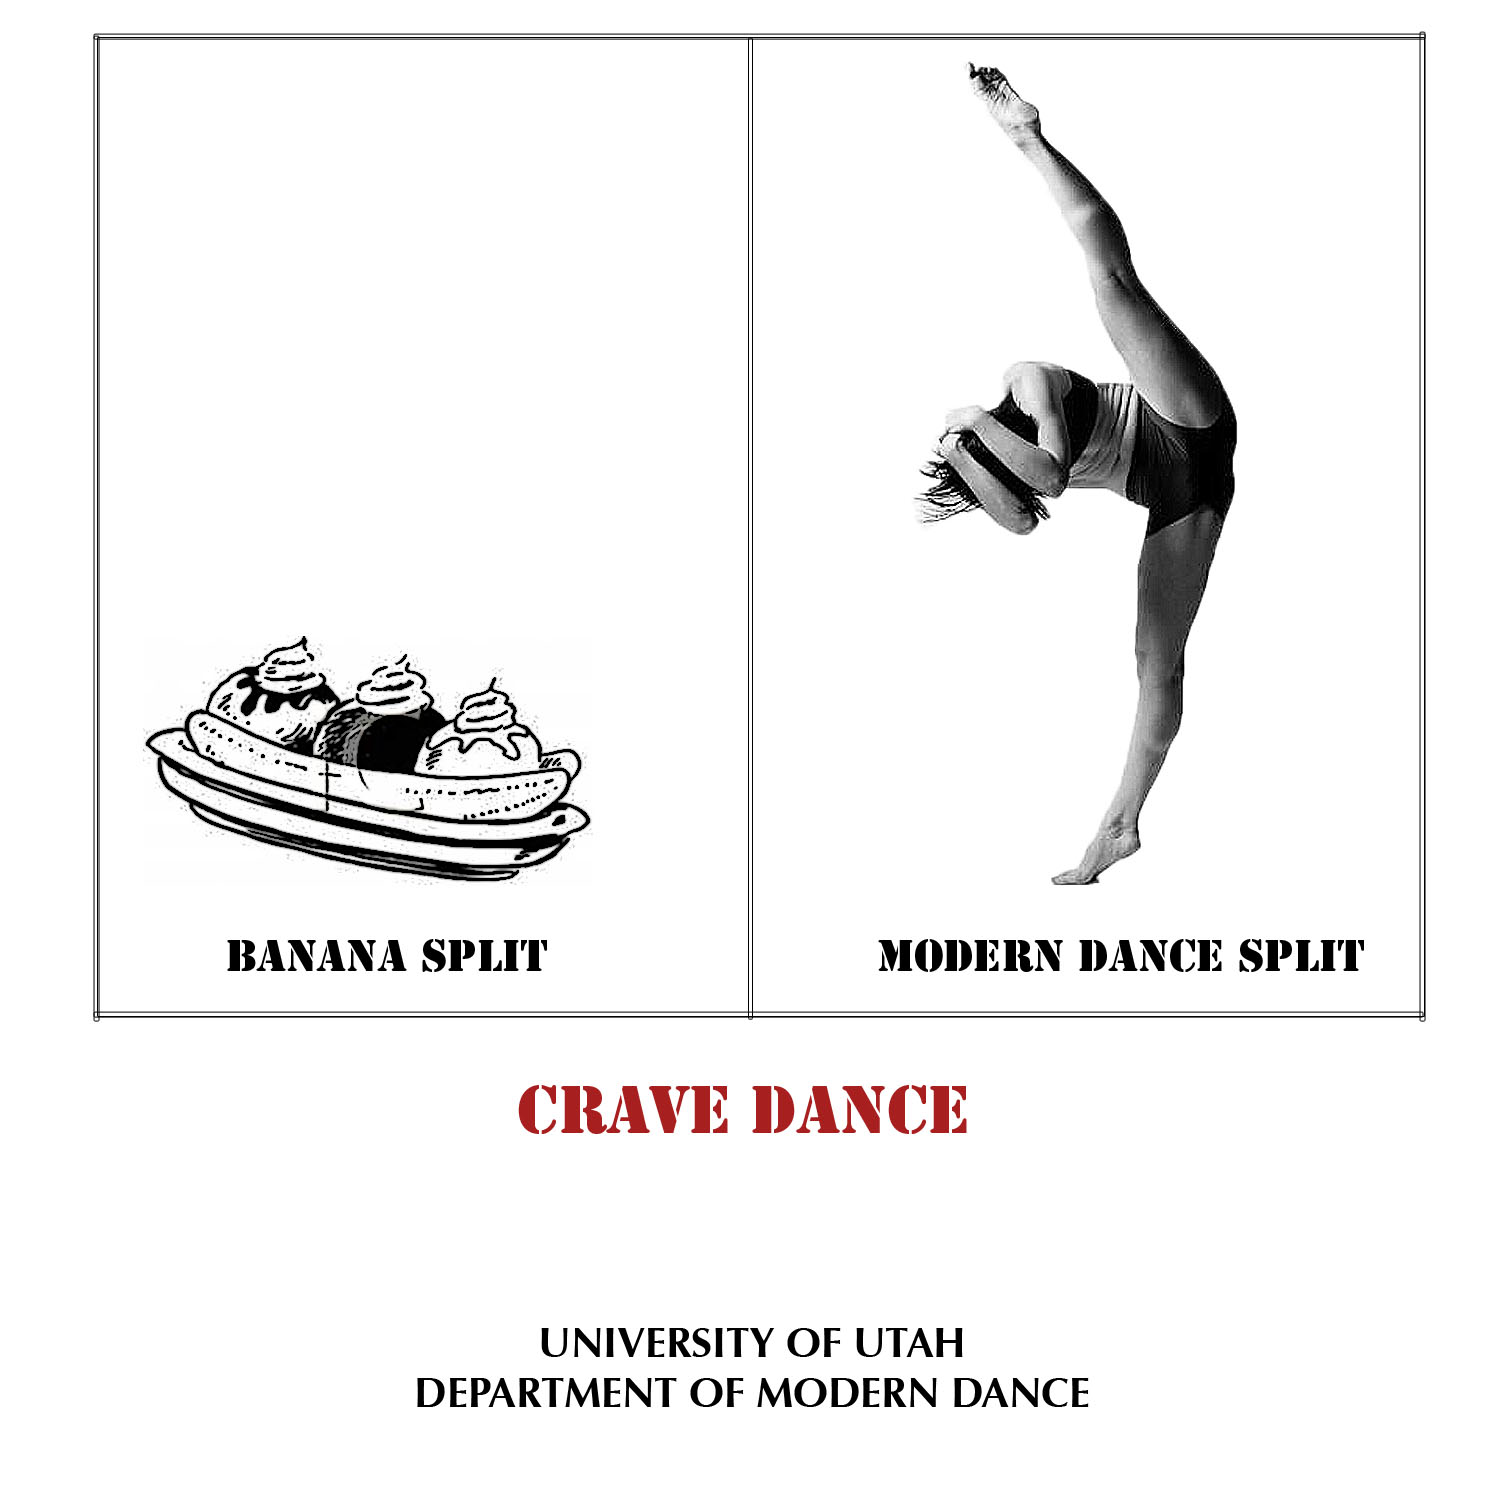 Shirt design utah - Another T Shirt Design Option For The Dept Of Modern Dance Photo Of Dancer By Cprowe